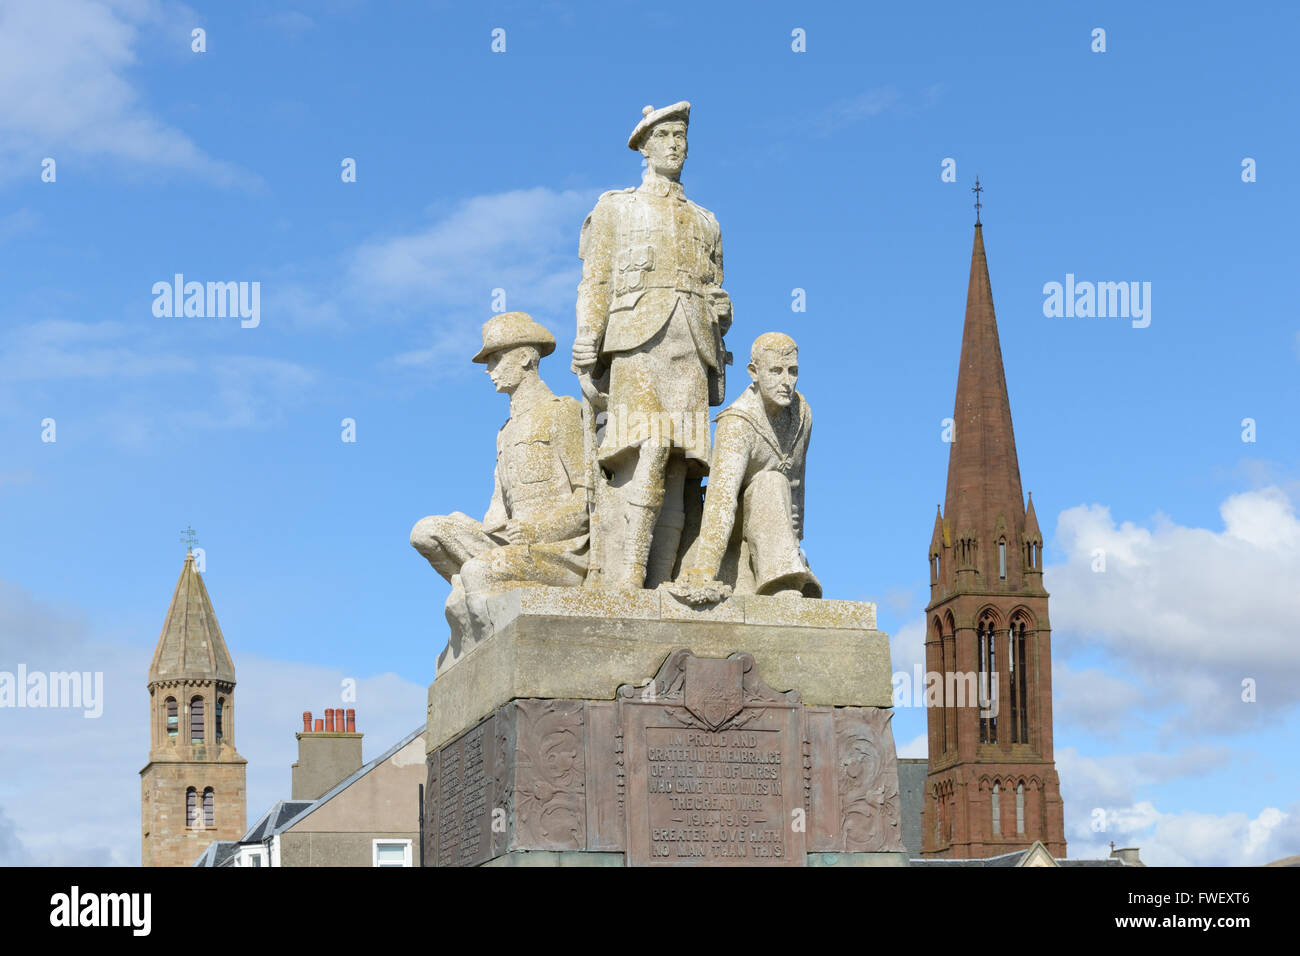 War memorial dedicated to the men from Largs, Scotland, who gave their lives in the Great War of 1914-19. - Stock Image